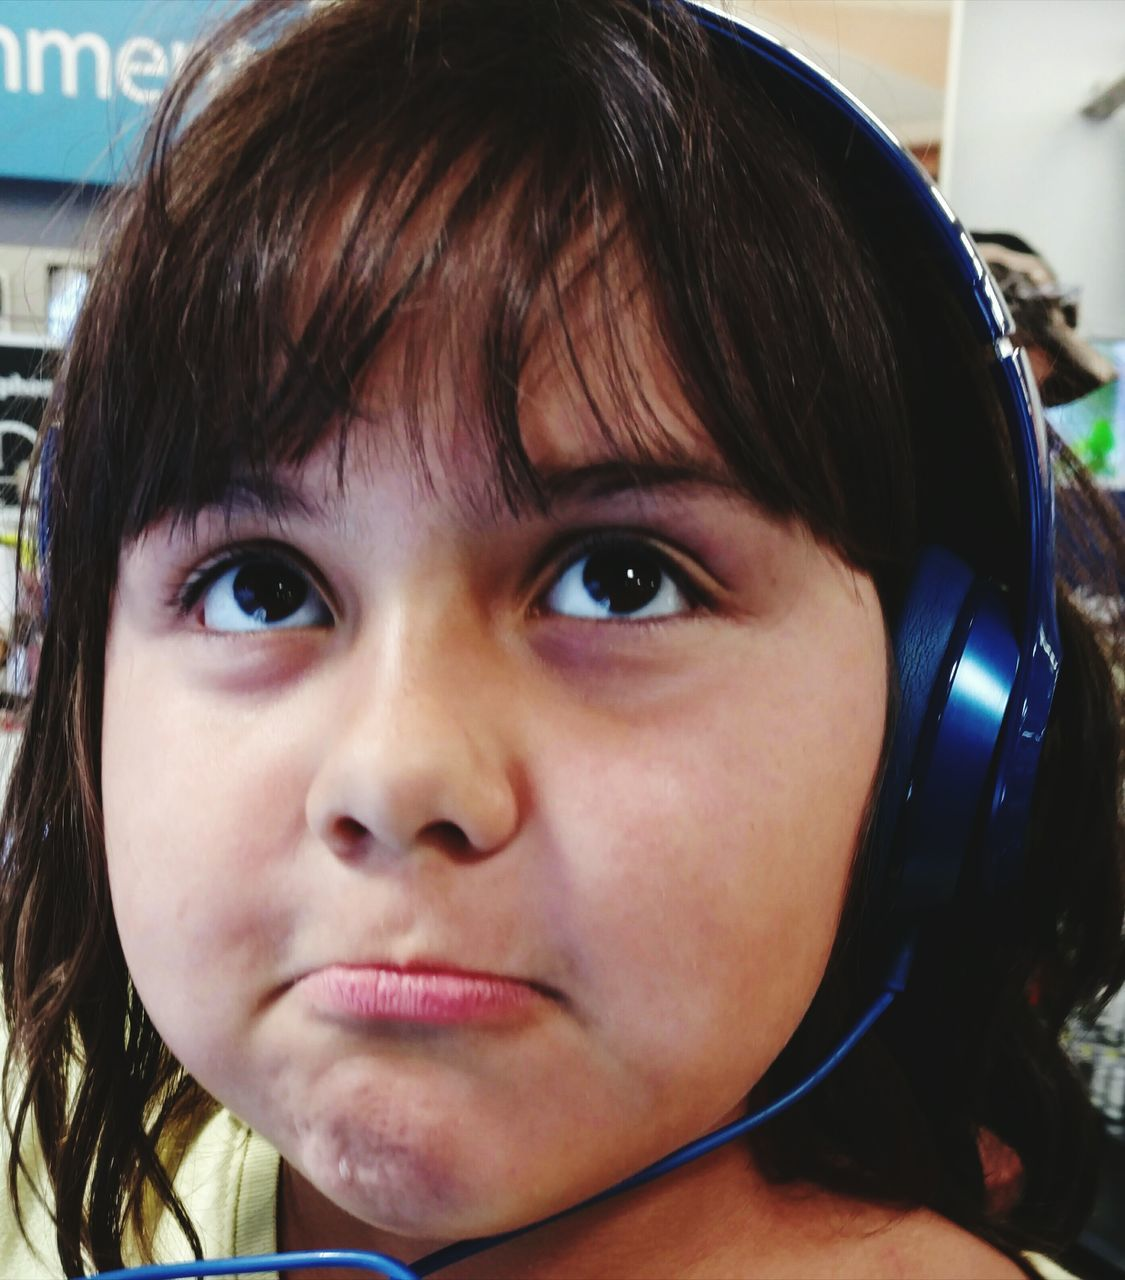 Close-Up Of Girl Listening To Music At Store